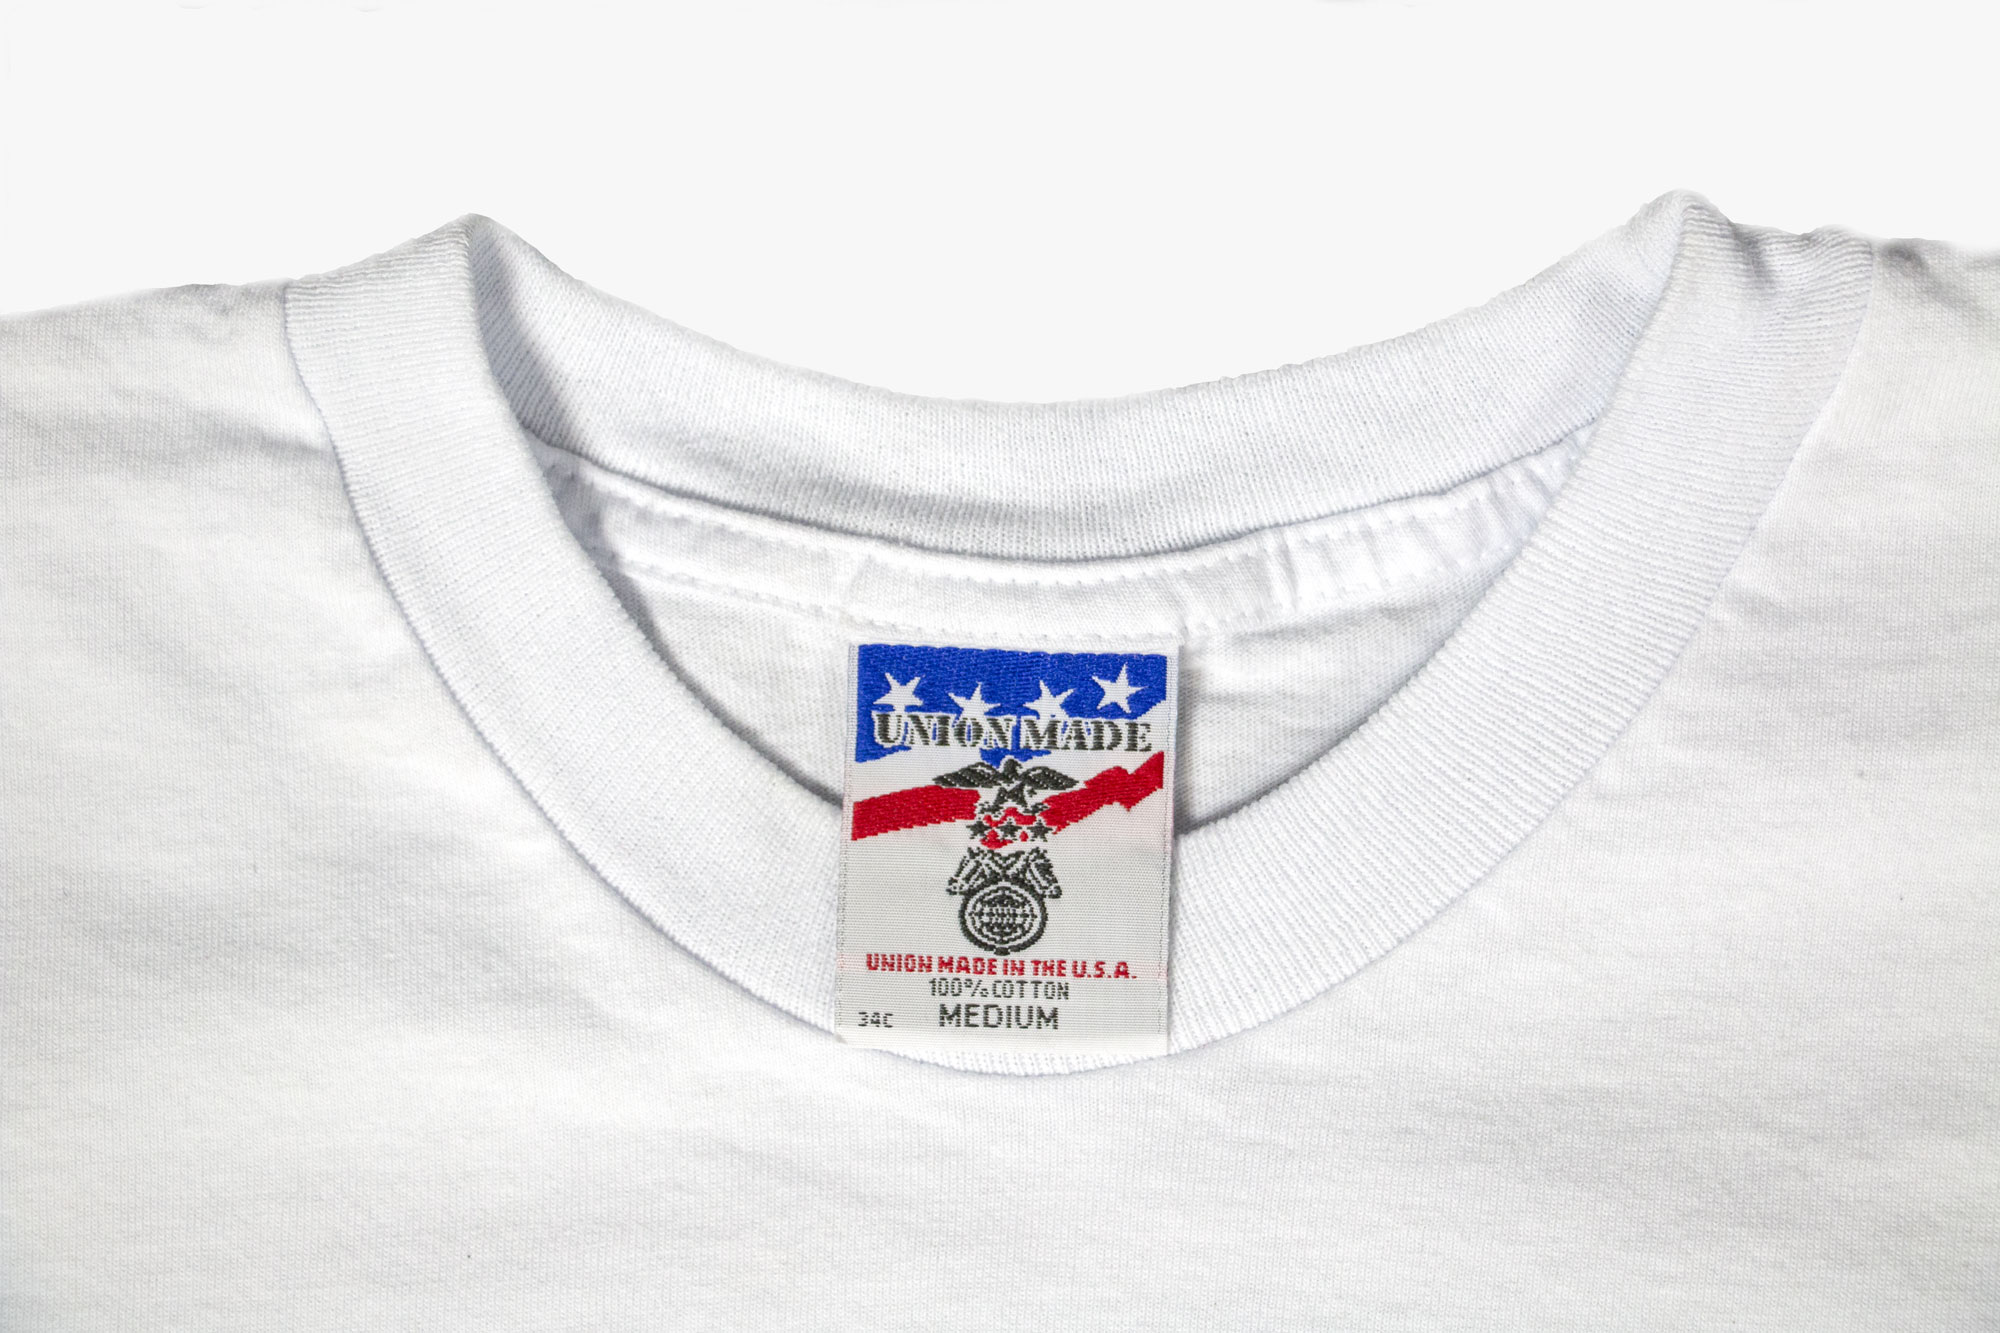 Introducing the Teamster Tee – Union Made in USA